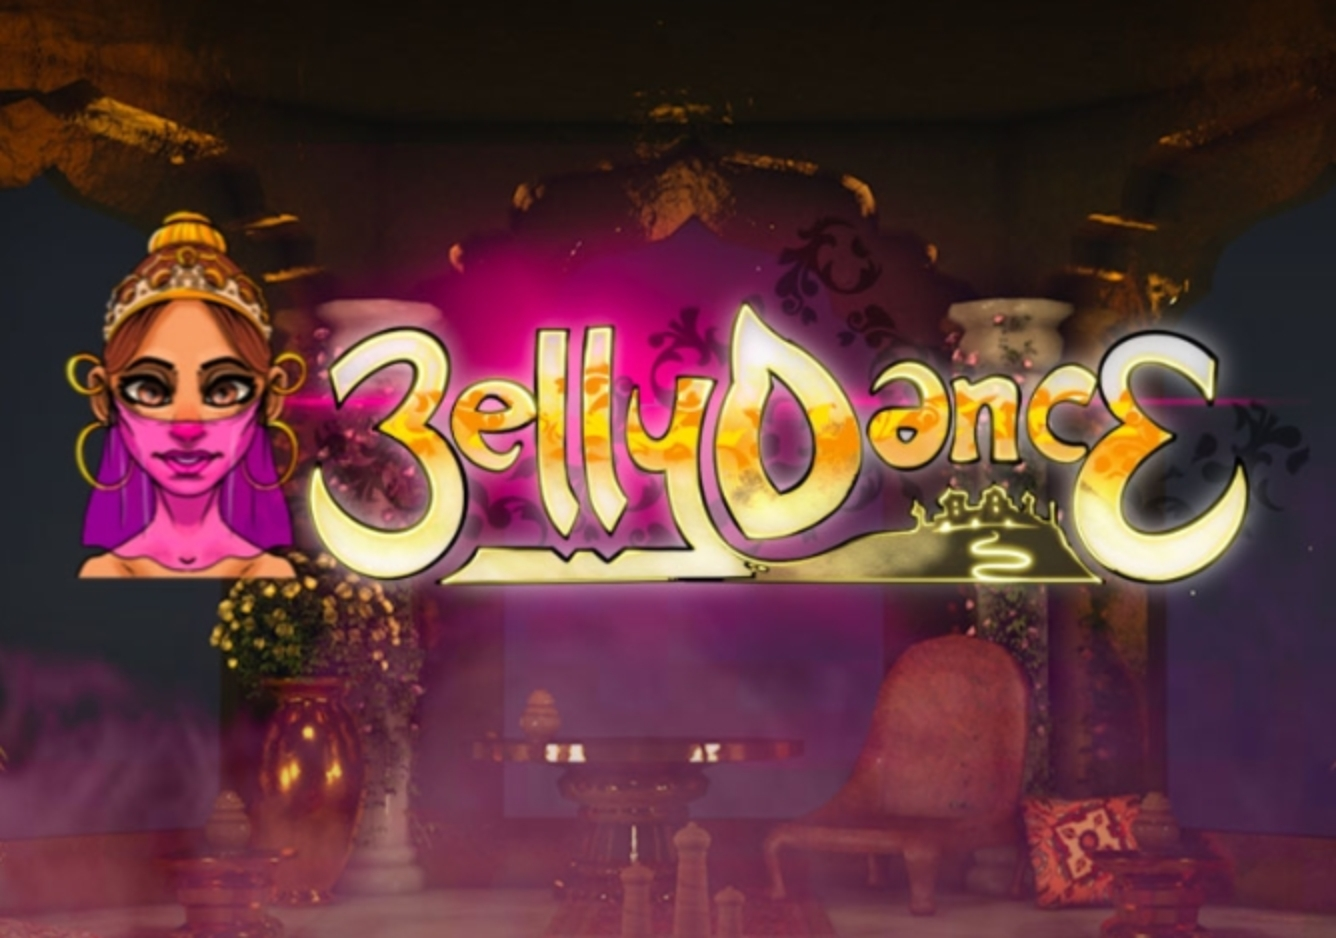 The Belly Dance Online Slot Demo Game by We Are Casino